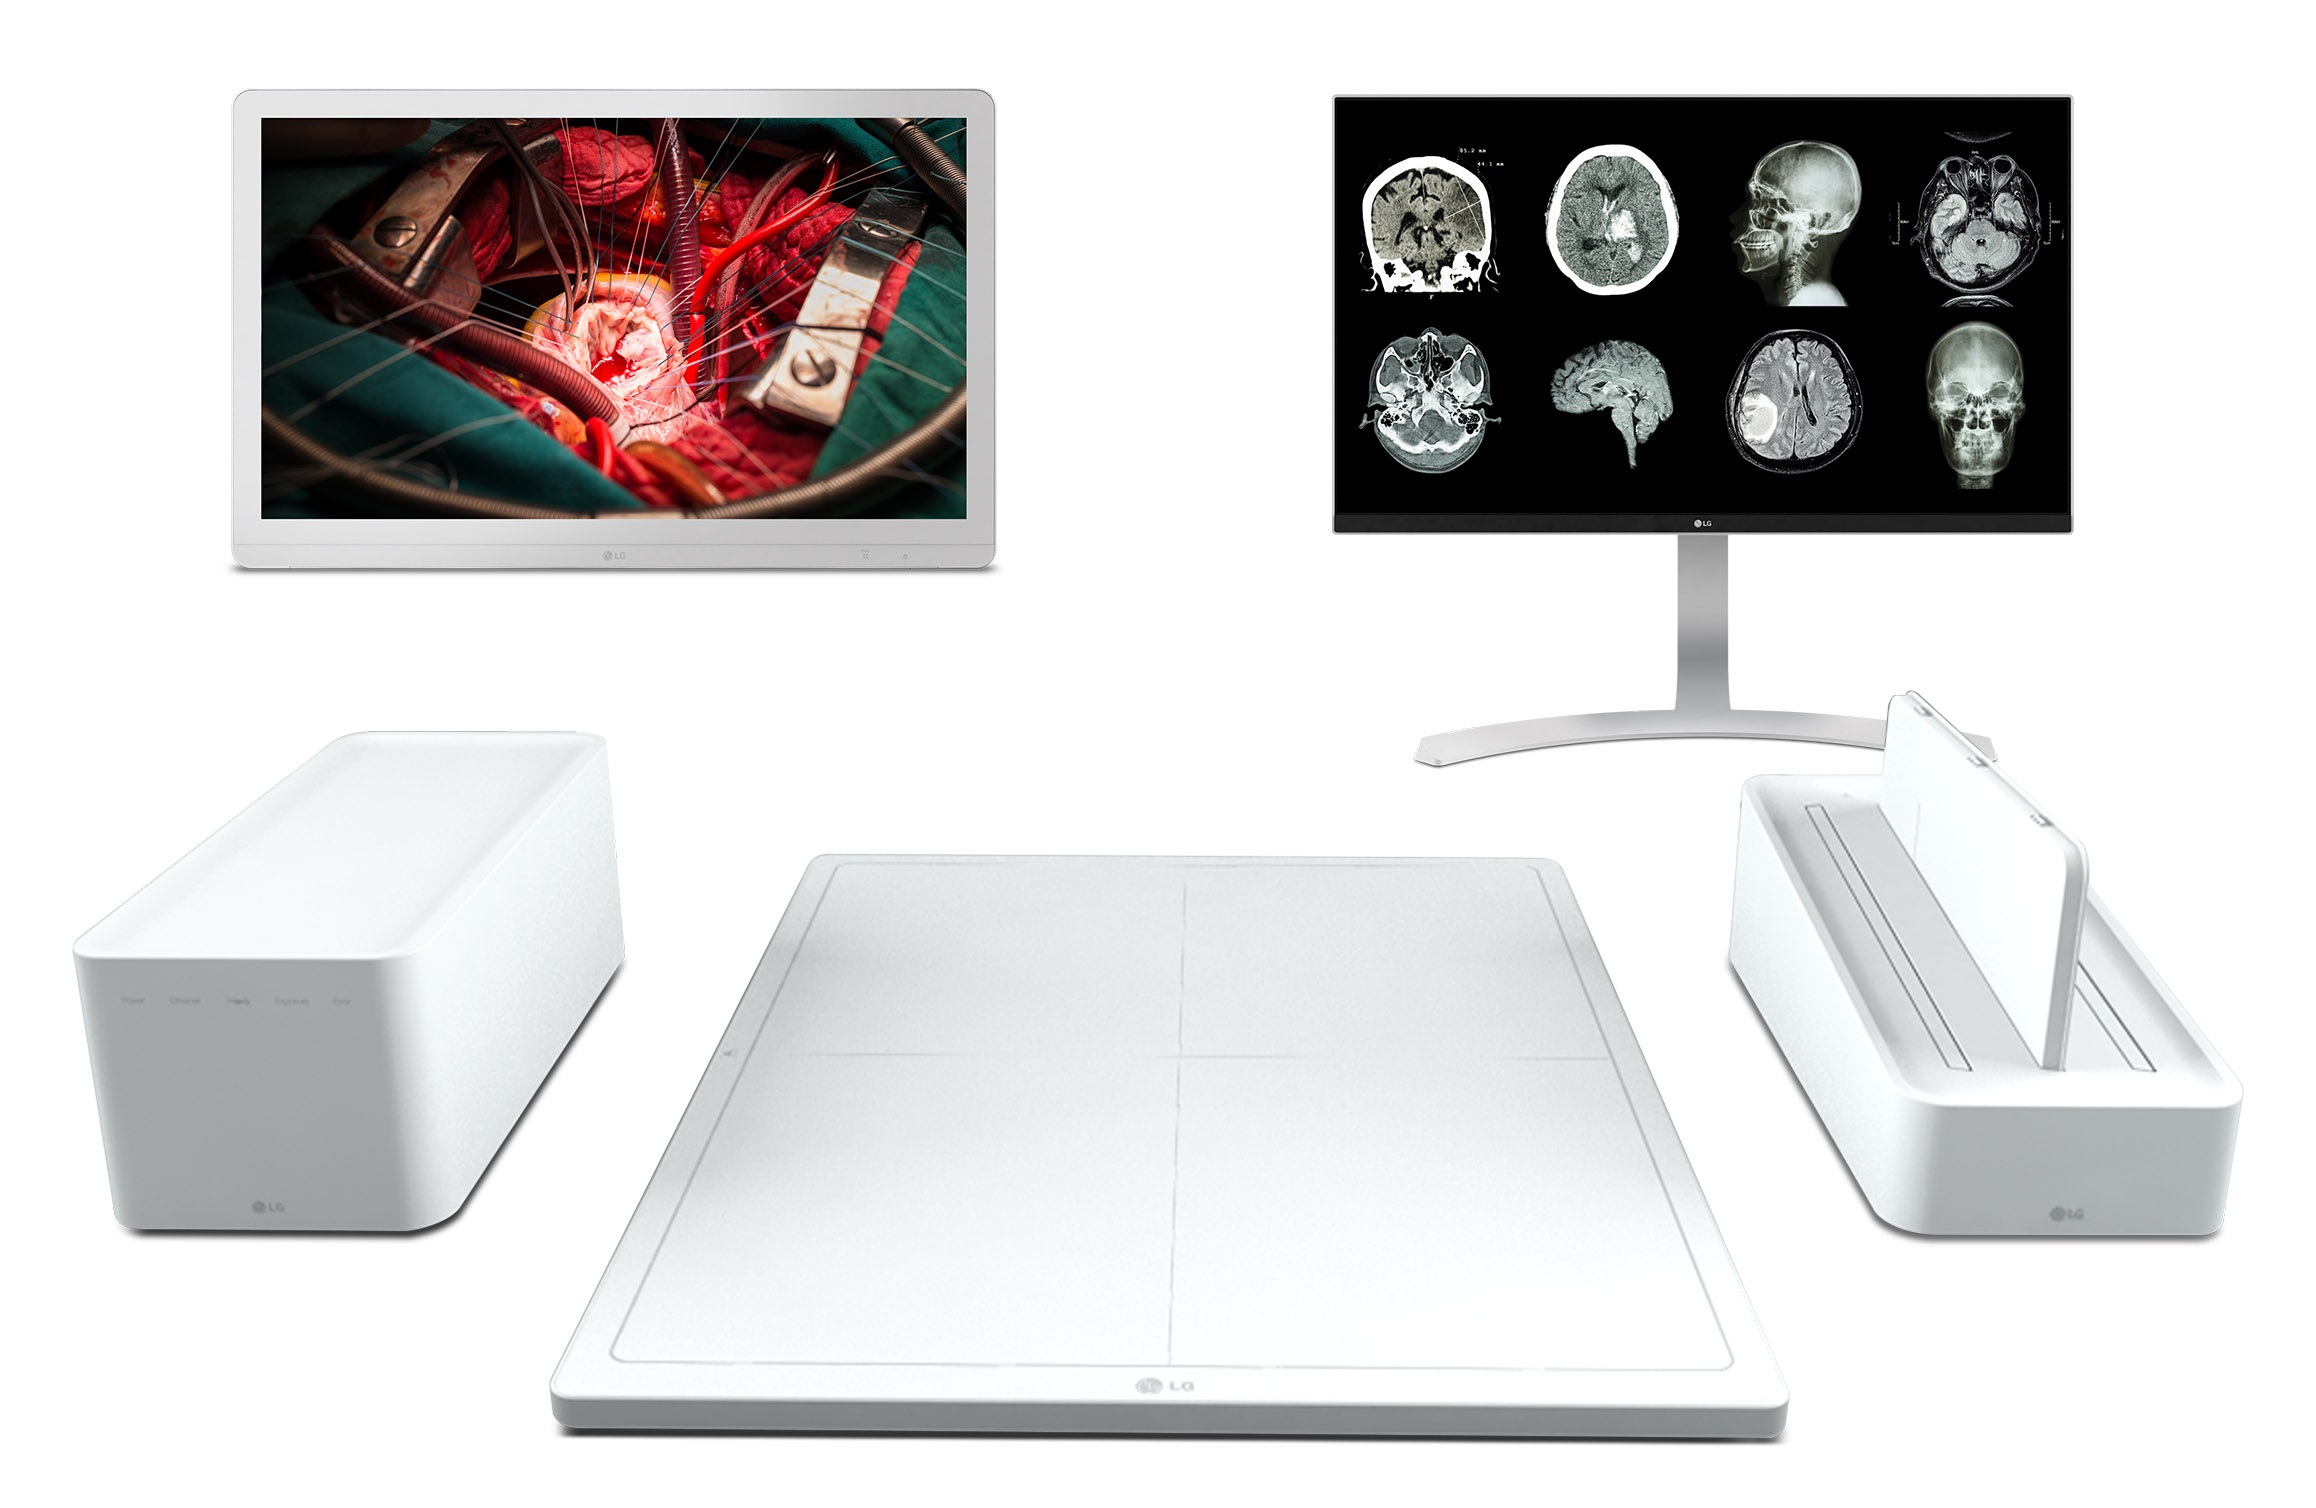 lg-surgical-and-clinical-review-monitors